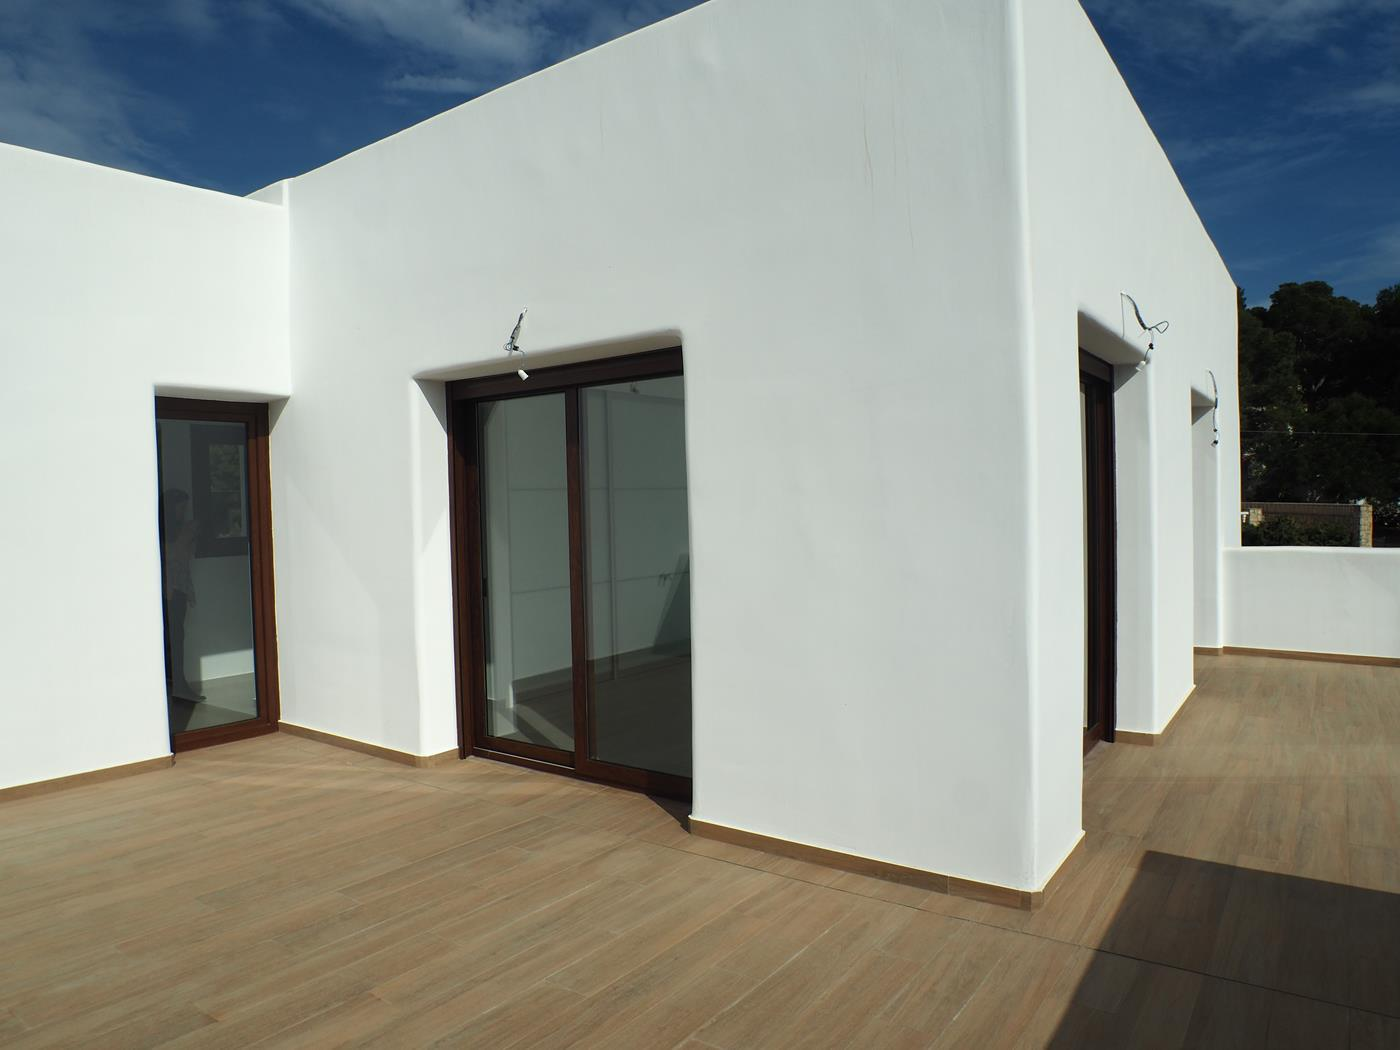 Fotogallerij - 7 - Exceptional homes in the Costa Blanca. Unparalleled Service. Exceptional properties in the Costa Blanca